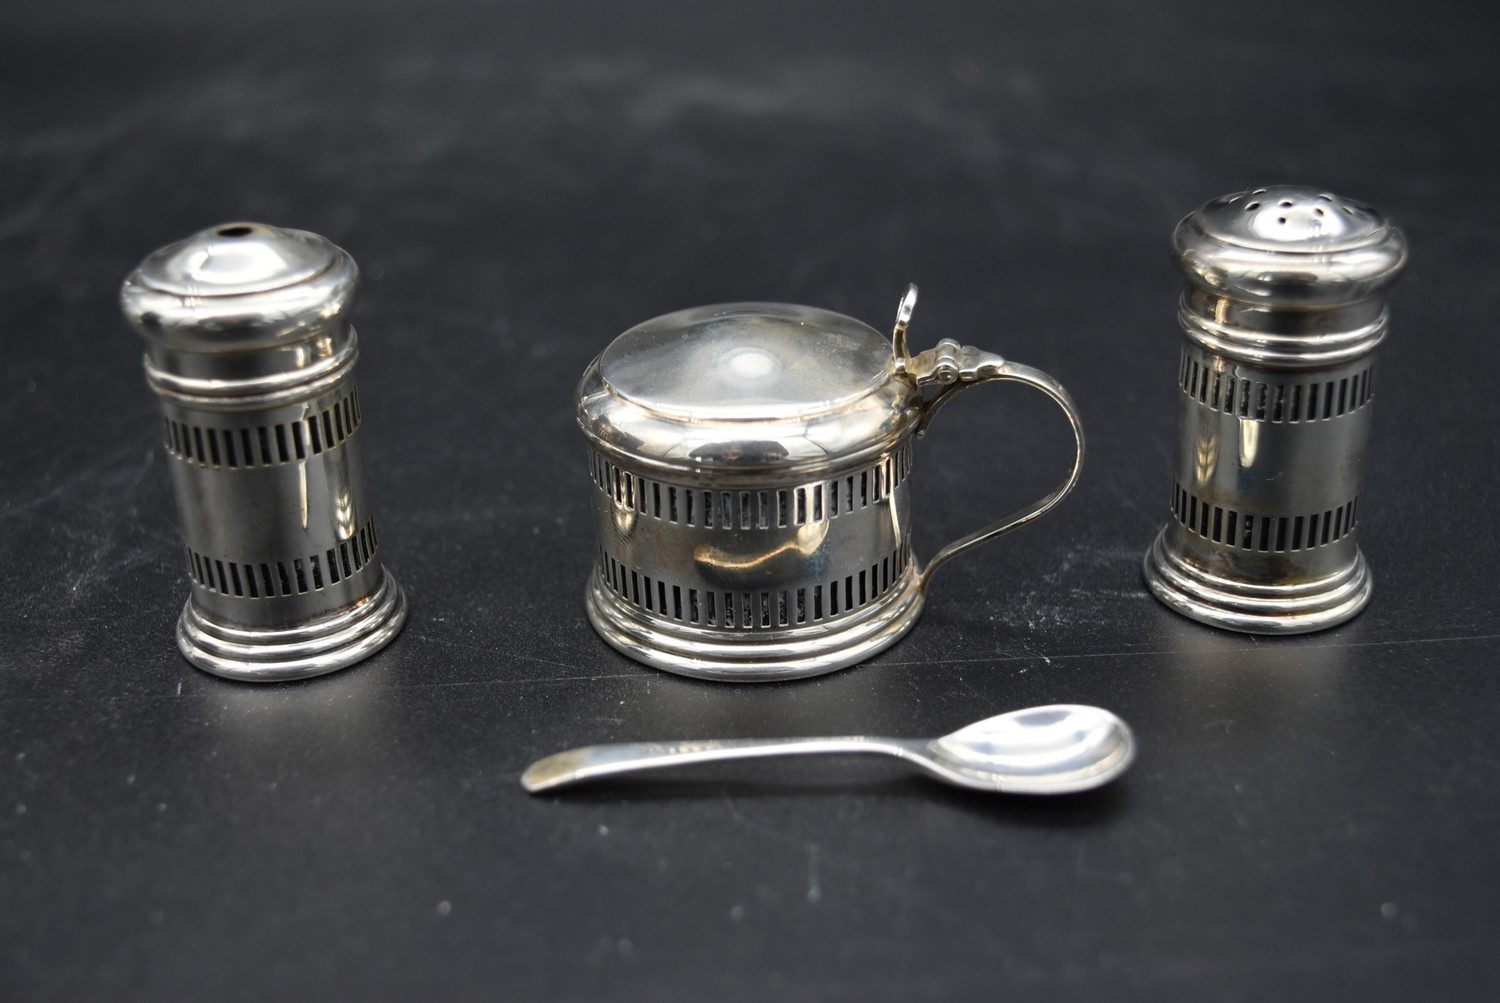 A cased silver cruet, mustard pot and spoon and salt and pepper shakers, CBrs for Clifford Brothers, - Image 2 of 10